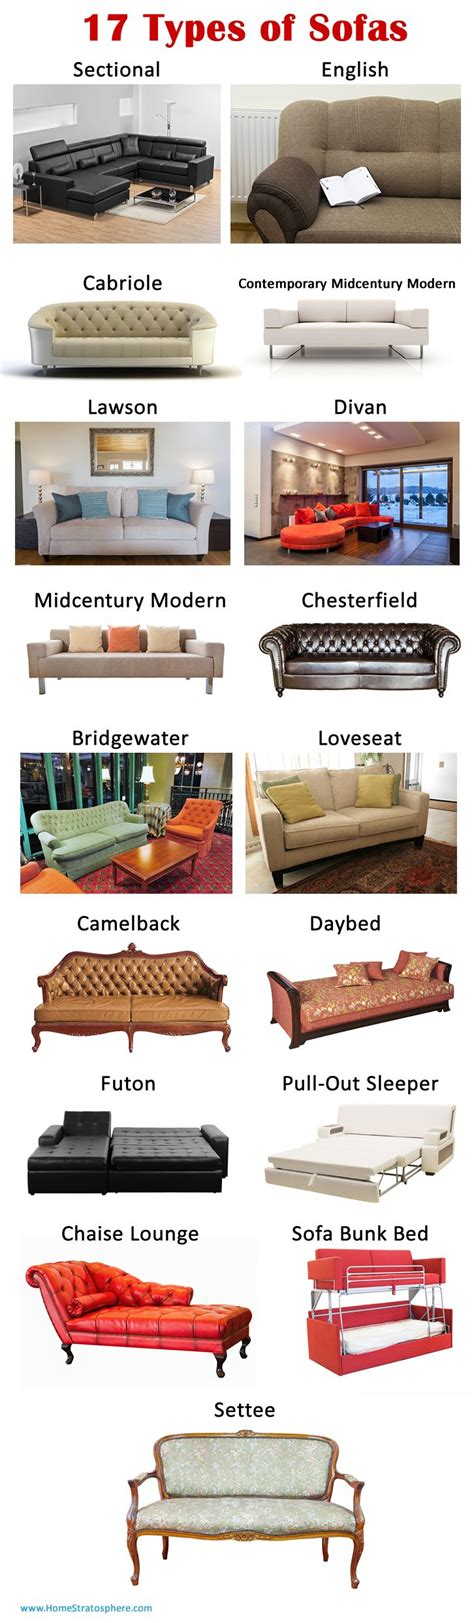 22 Types of Sofas & Couches Explained (WITH PICTURES